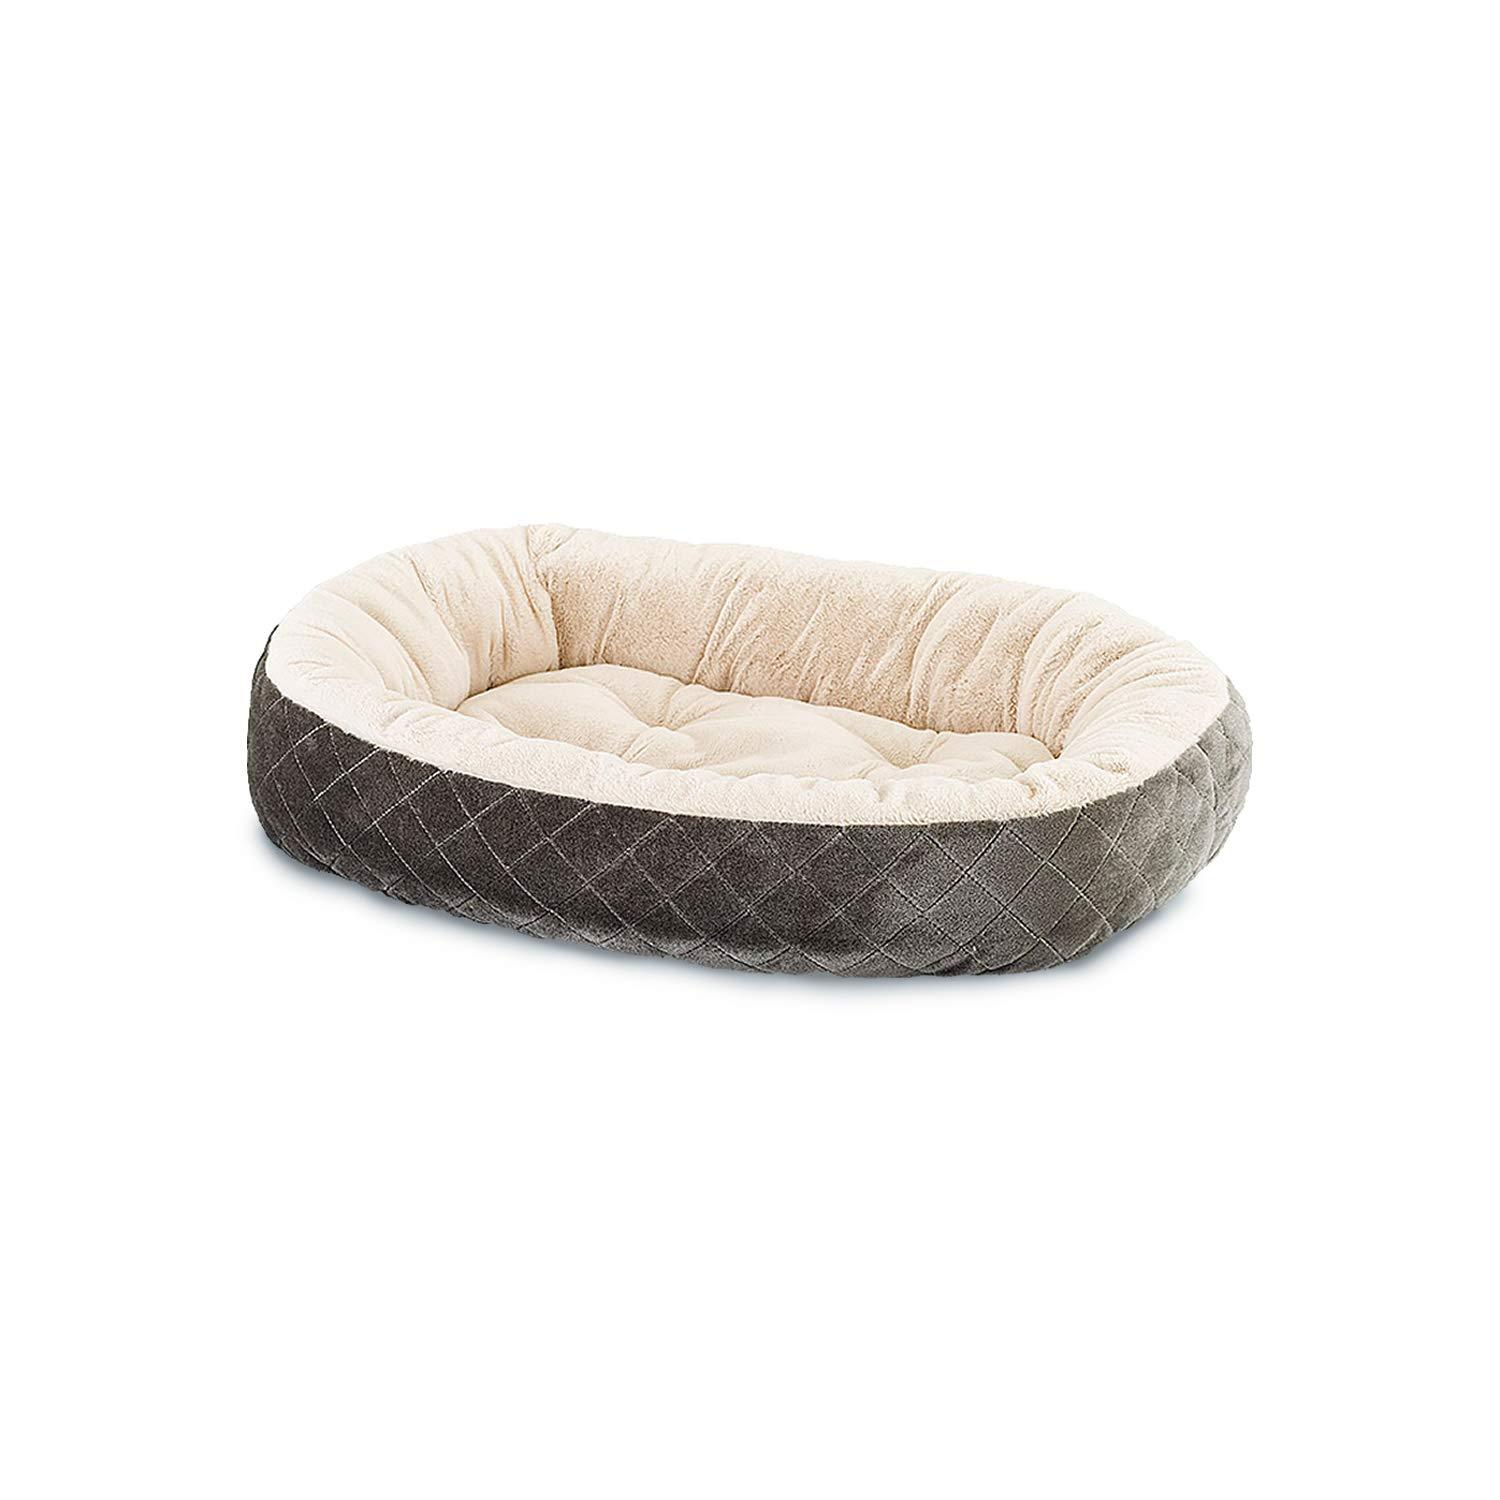 Ethical Pets Sleep Zone Quilted Oval Cuddler Pet Bed, 26 , Light Grey